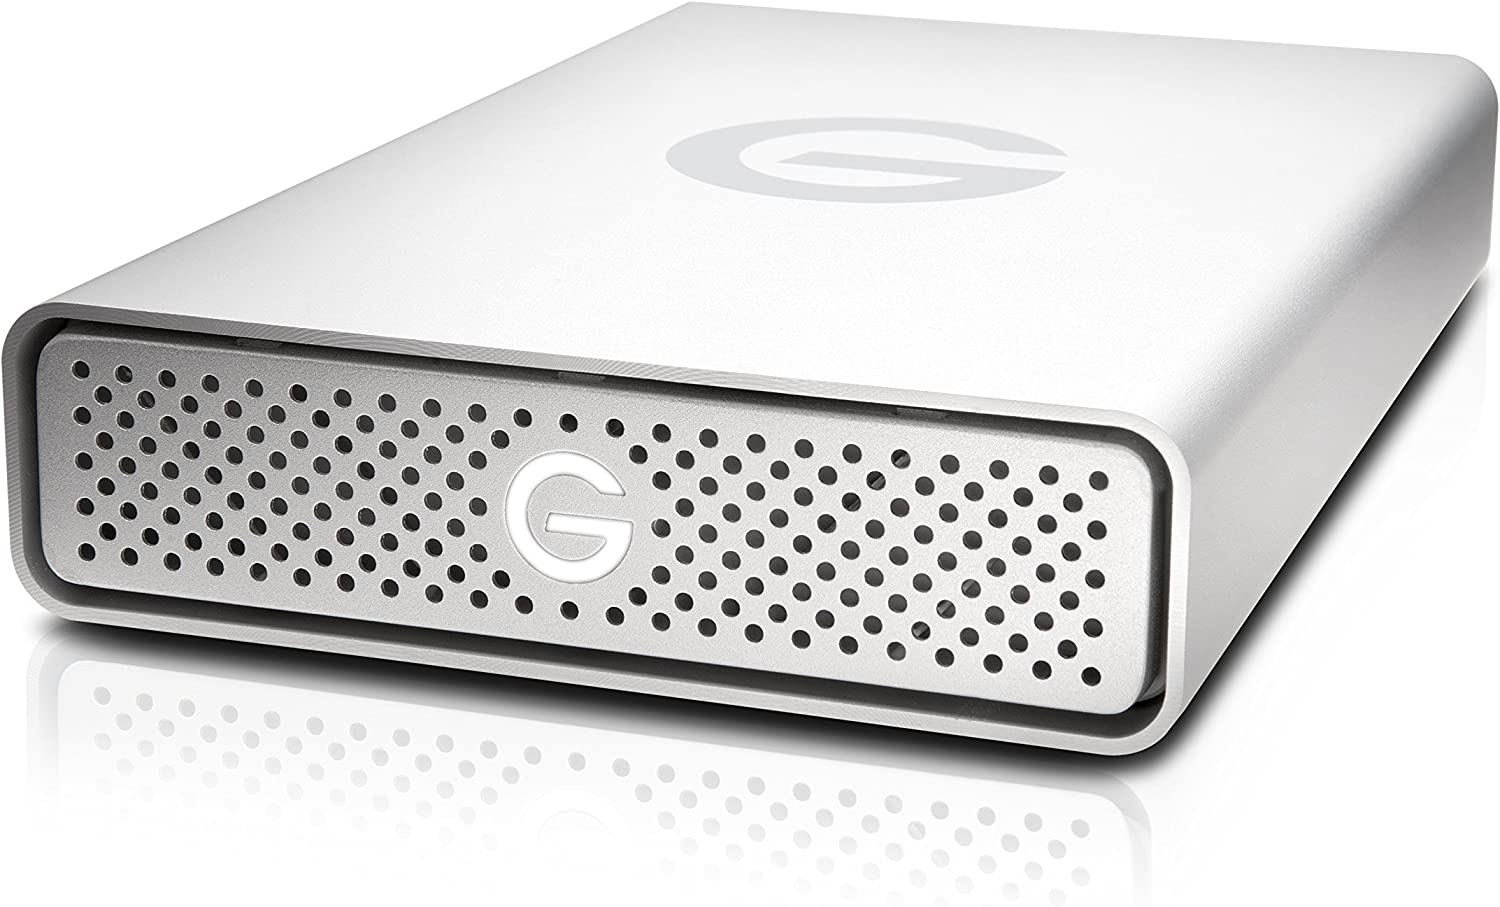 G-Technology 4TB G-DRIVE USB 3.0 Desktop External Hard Drive, Silver - Compact, High-Performance Storage - 0G03594-1